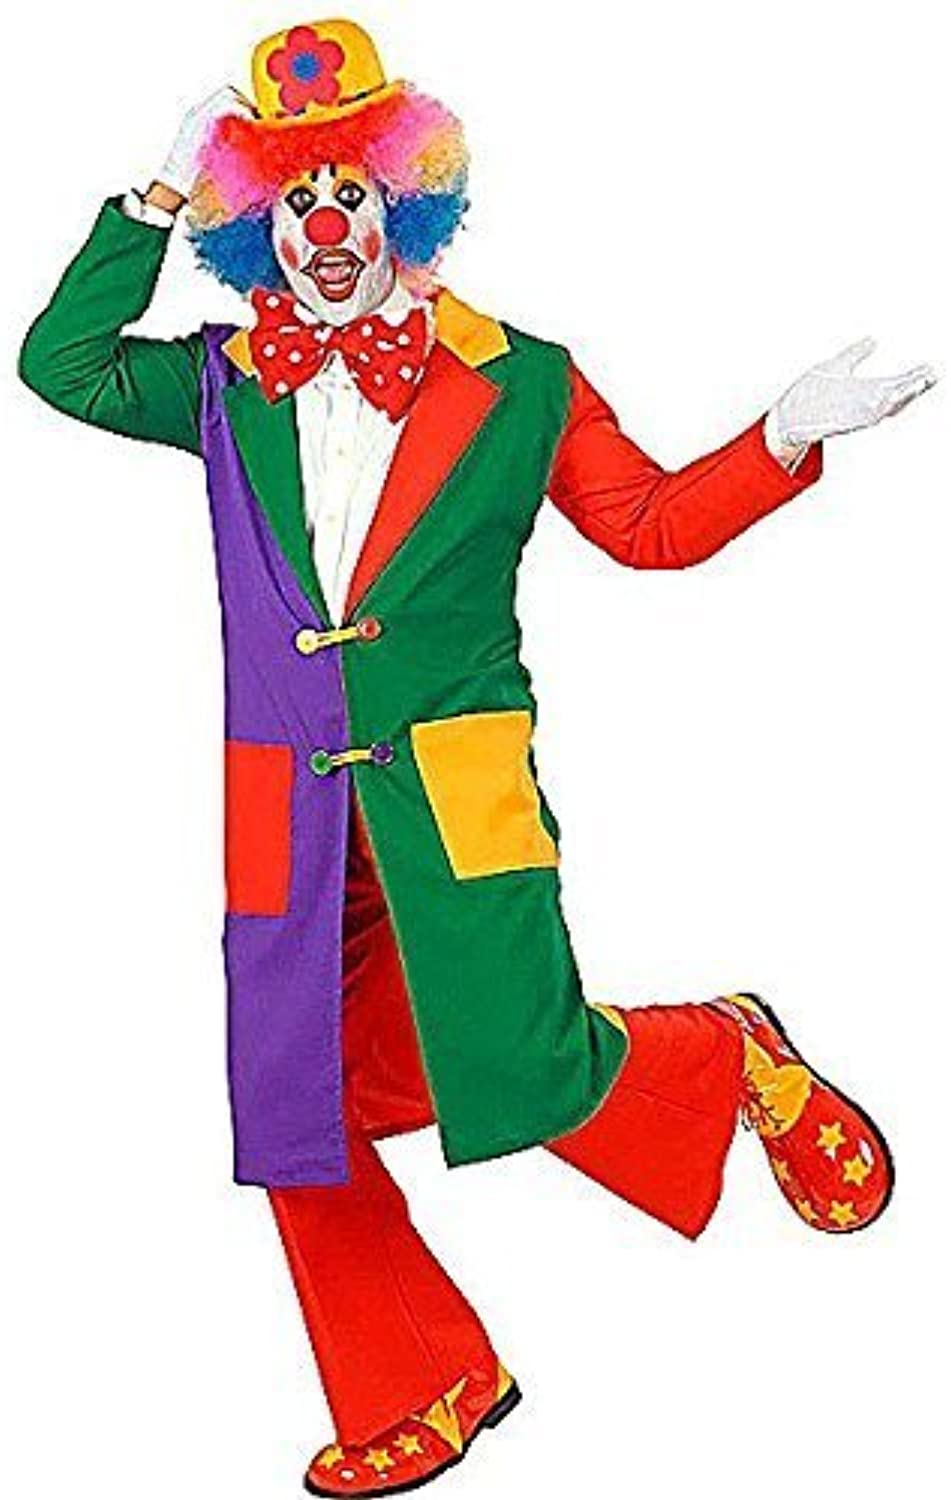 Todo en alta calidad y bajo precio. Clown Clown Clown Long Coat Costume Large for Circus Fancy Dress by WIDMANN S.R.L.  se descuenta